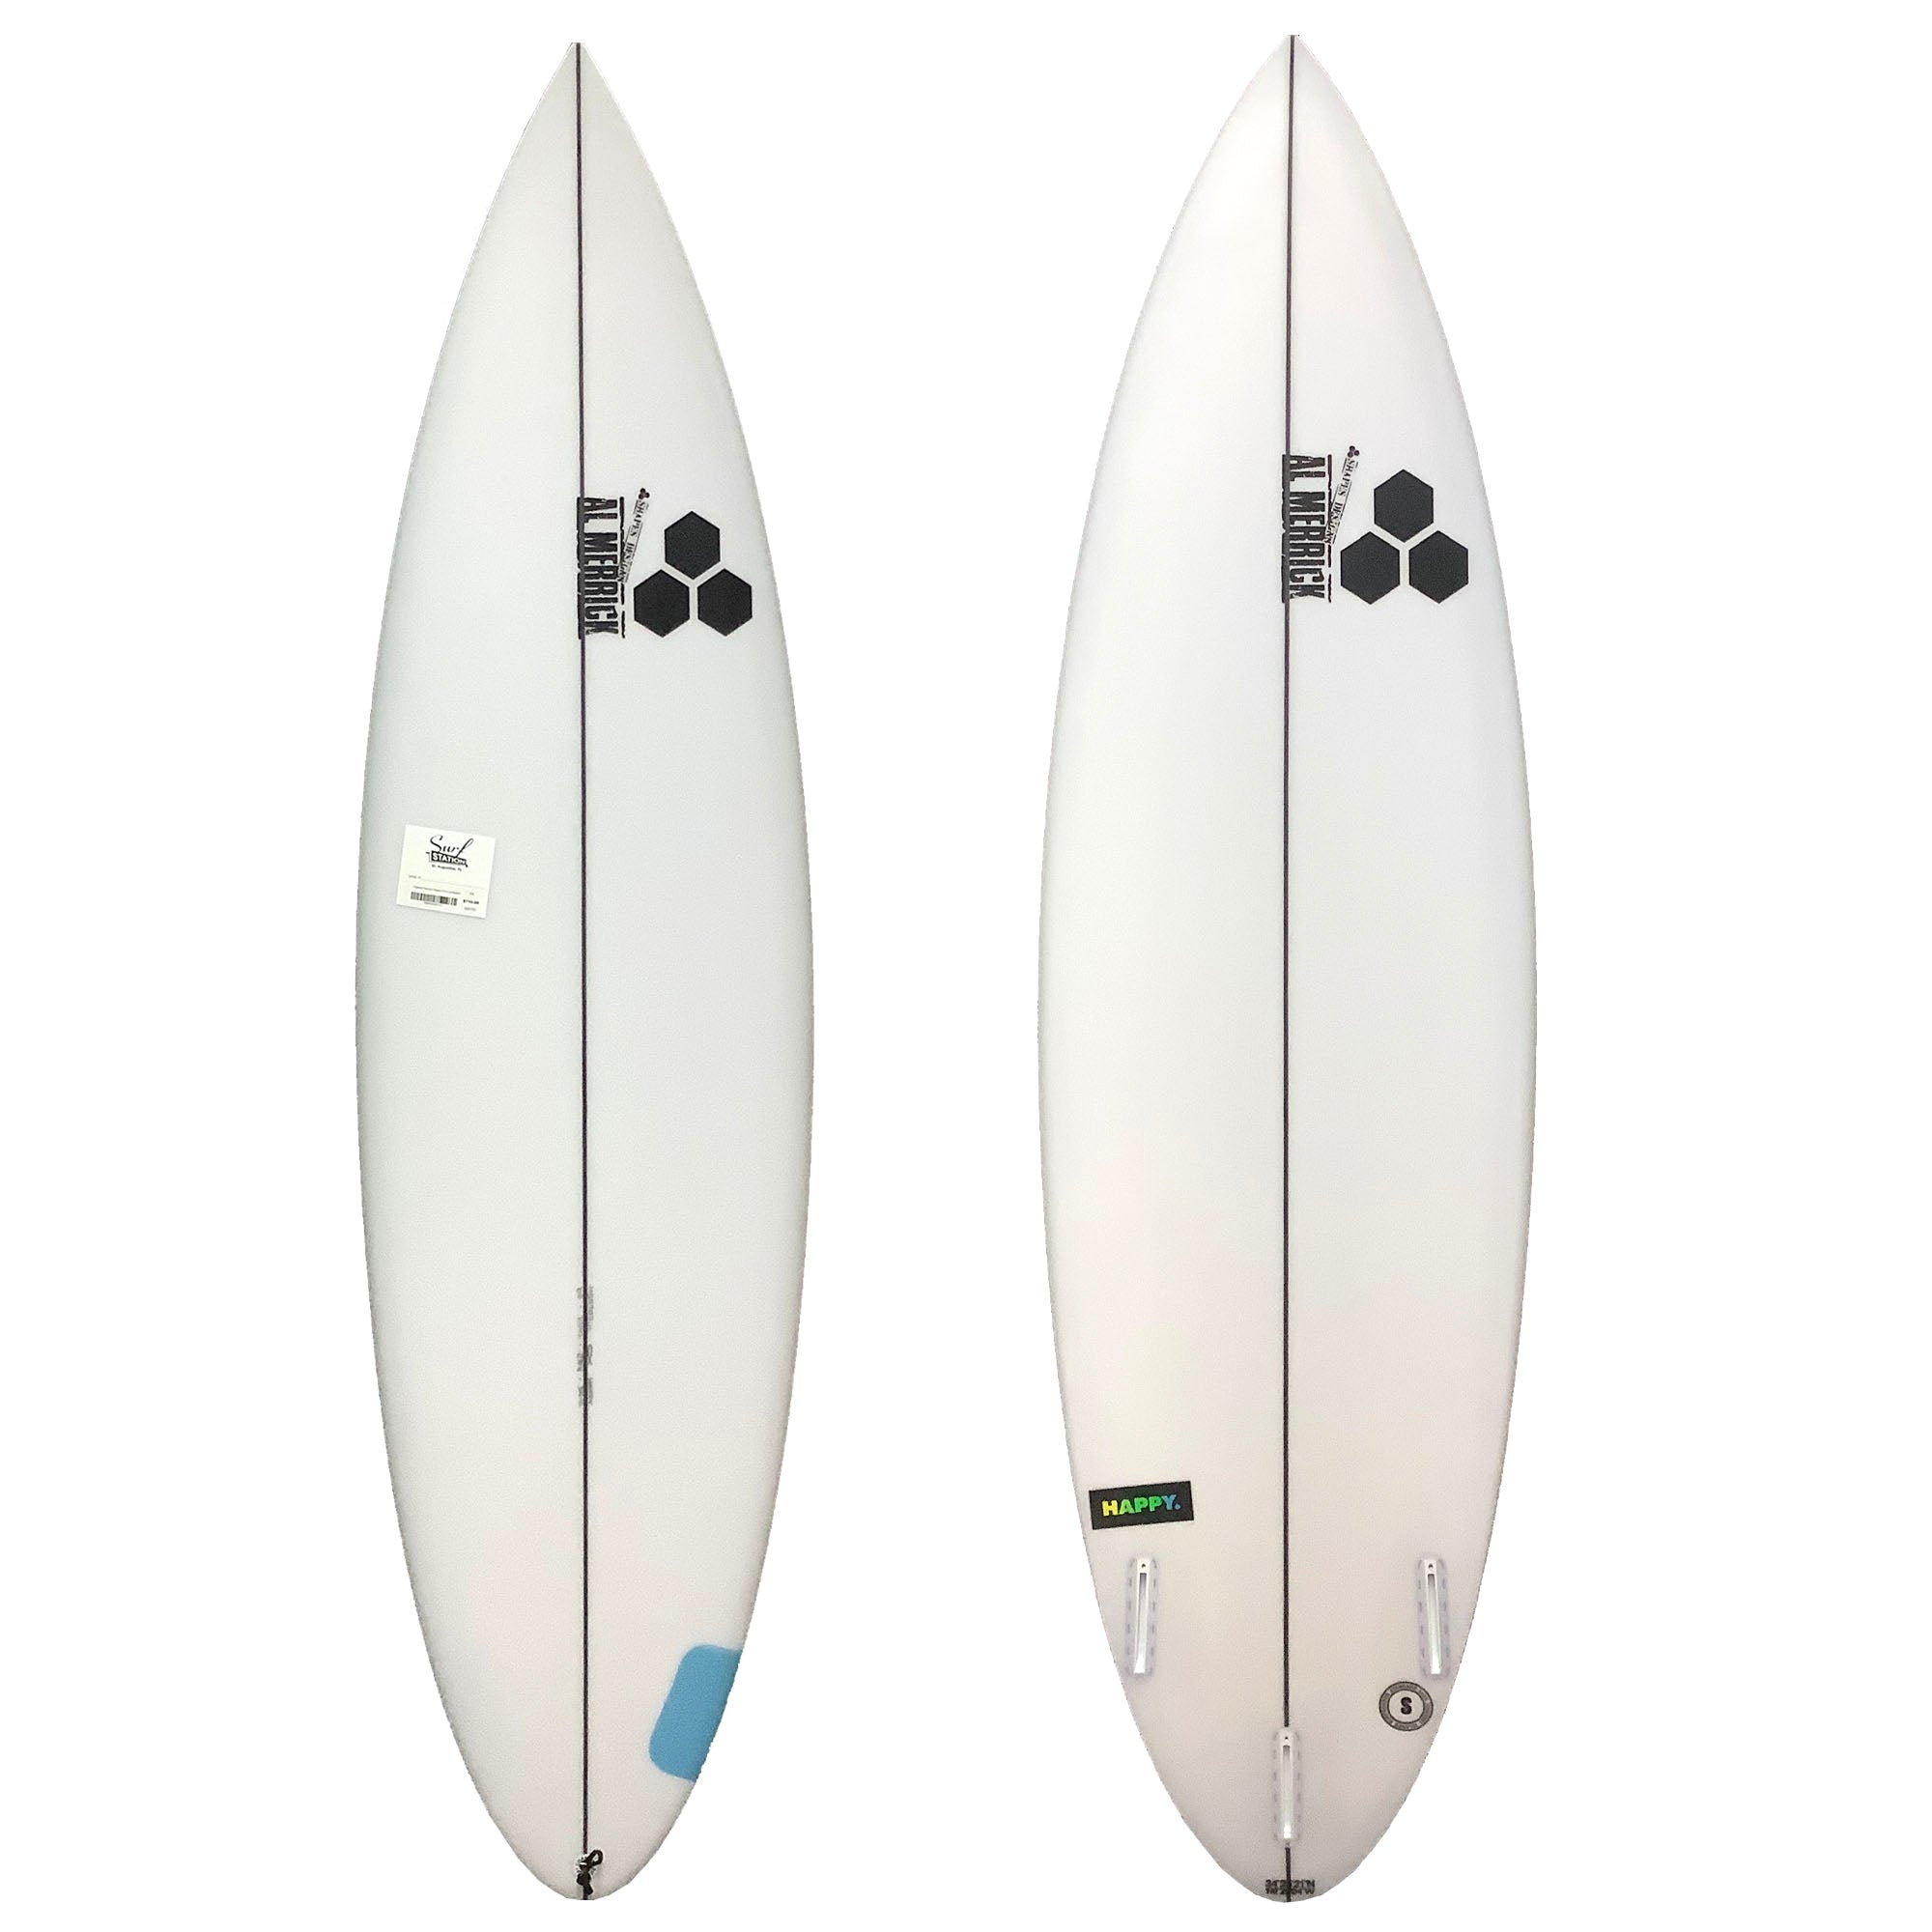 Channel Islands Happy Step-Up Surfboard - Futures